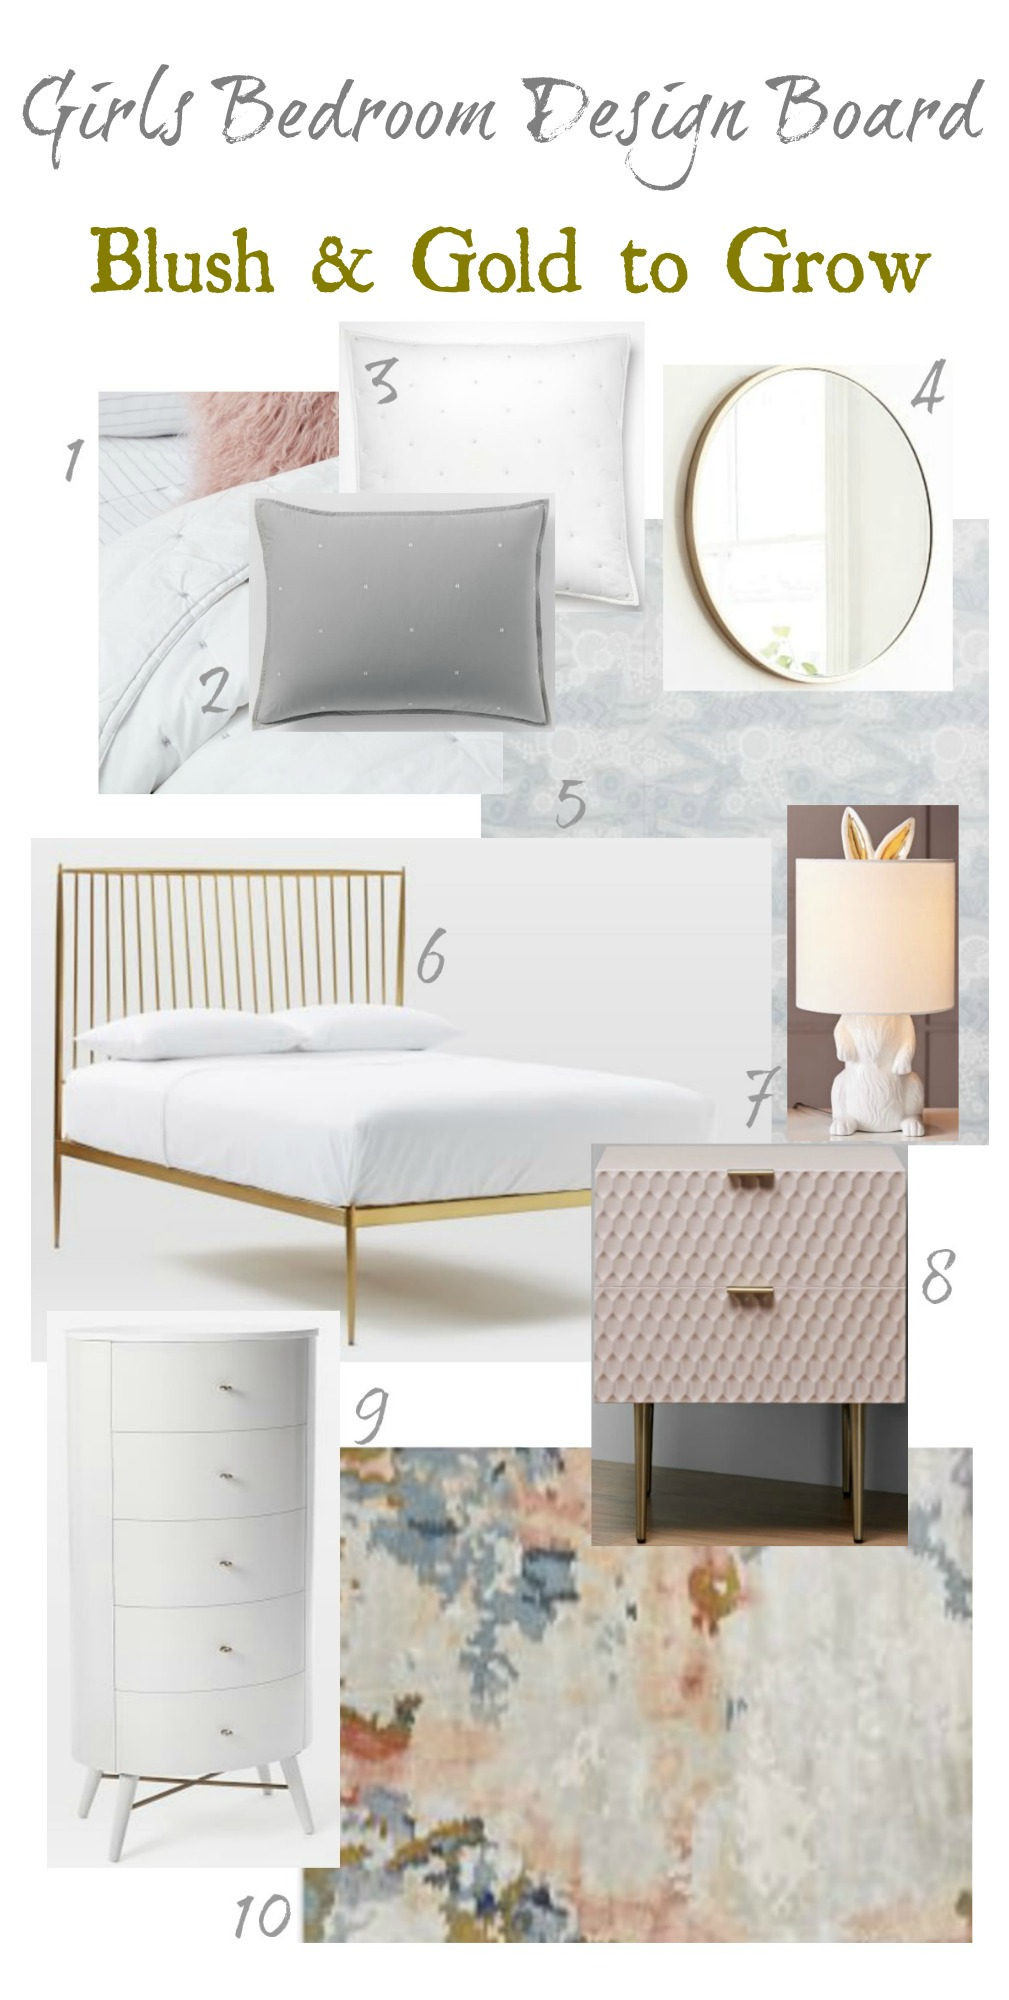 Girls Bedroom Inspiration- Blush and Gold to Grow with her